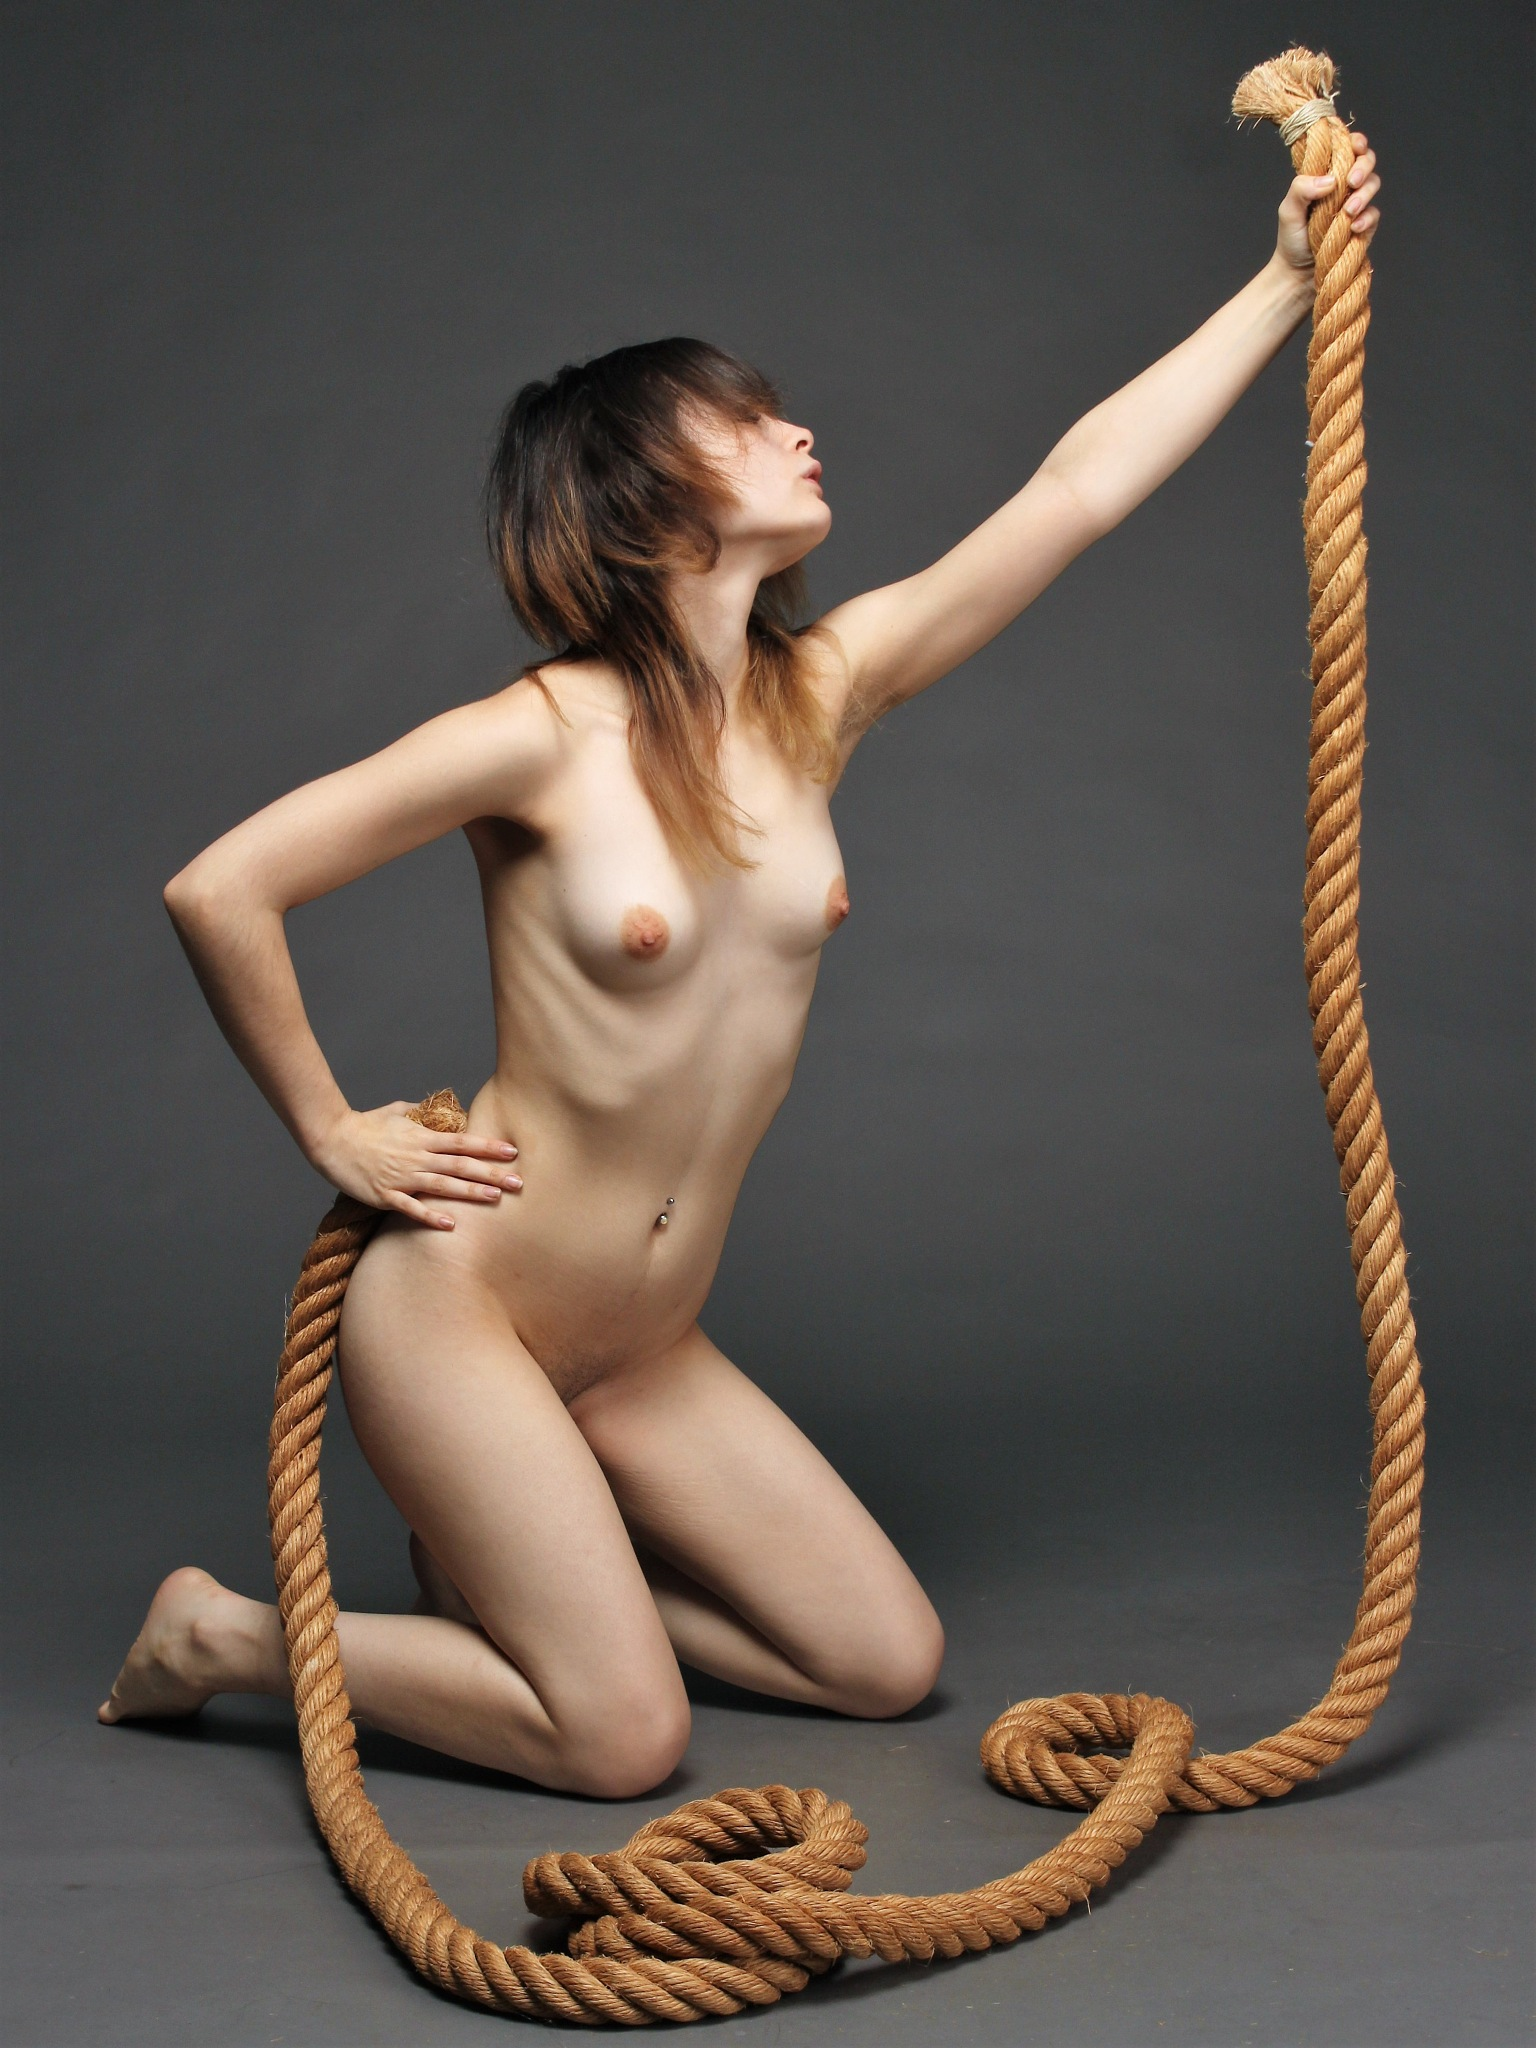 With rope by Mathieu Magnée